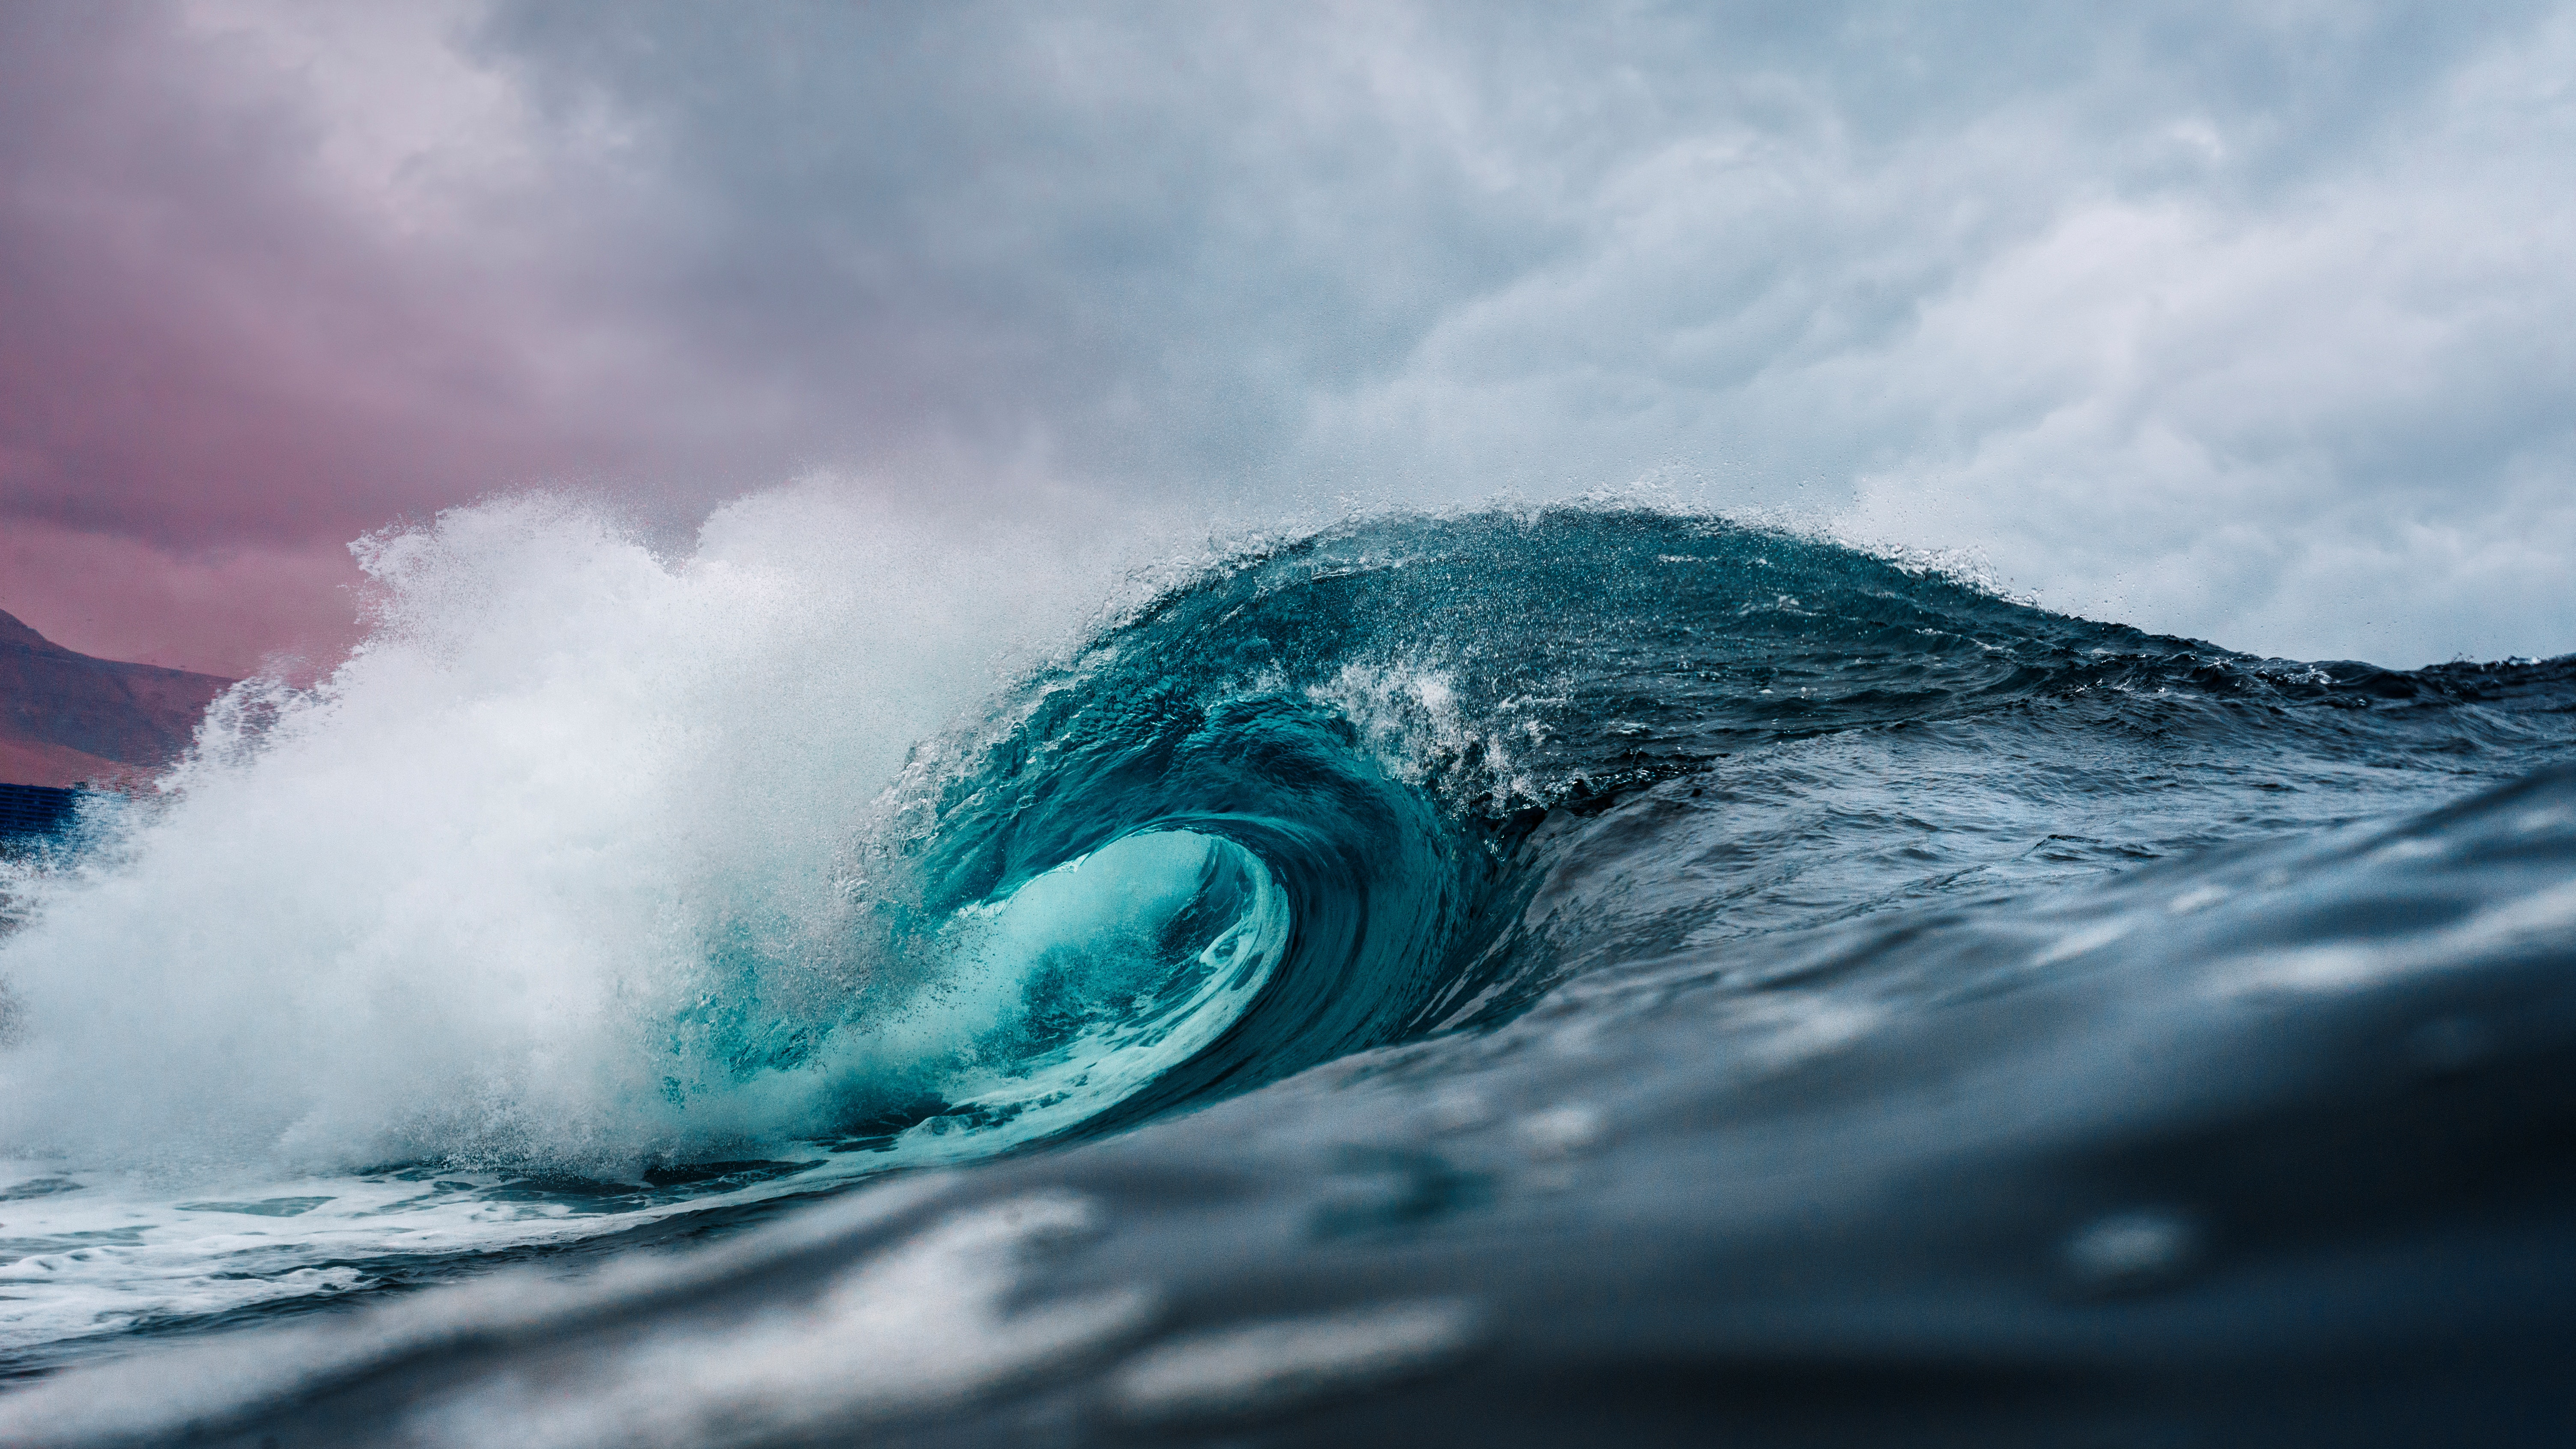 Ocean wave 5k hd nature 4k wallpapers images backgrounds photos and pictures - Wave pics wallpaper ...